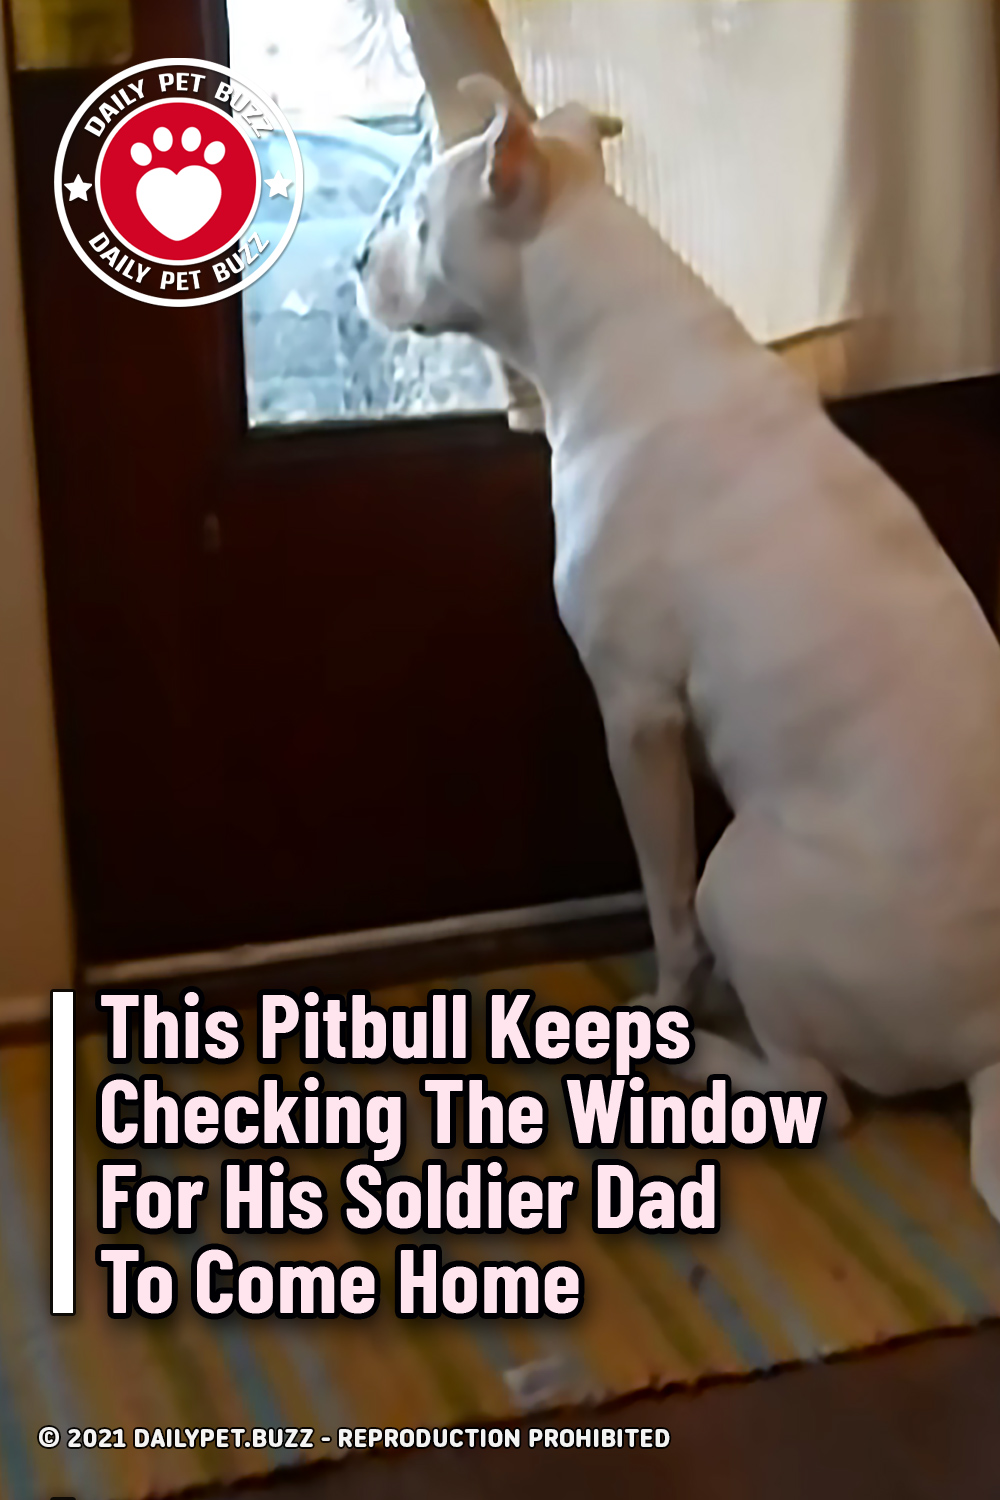 This Pitbull Keeps Checking The Window For His Soldier Dad To Come Home